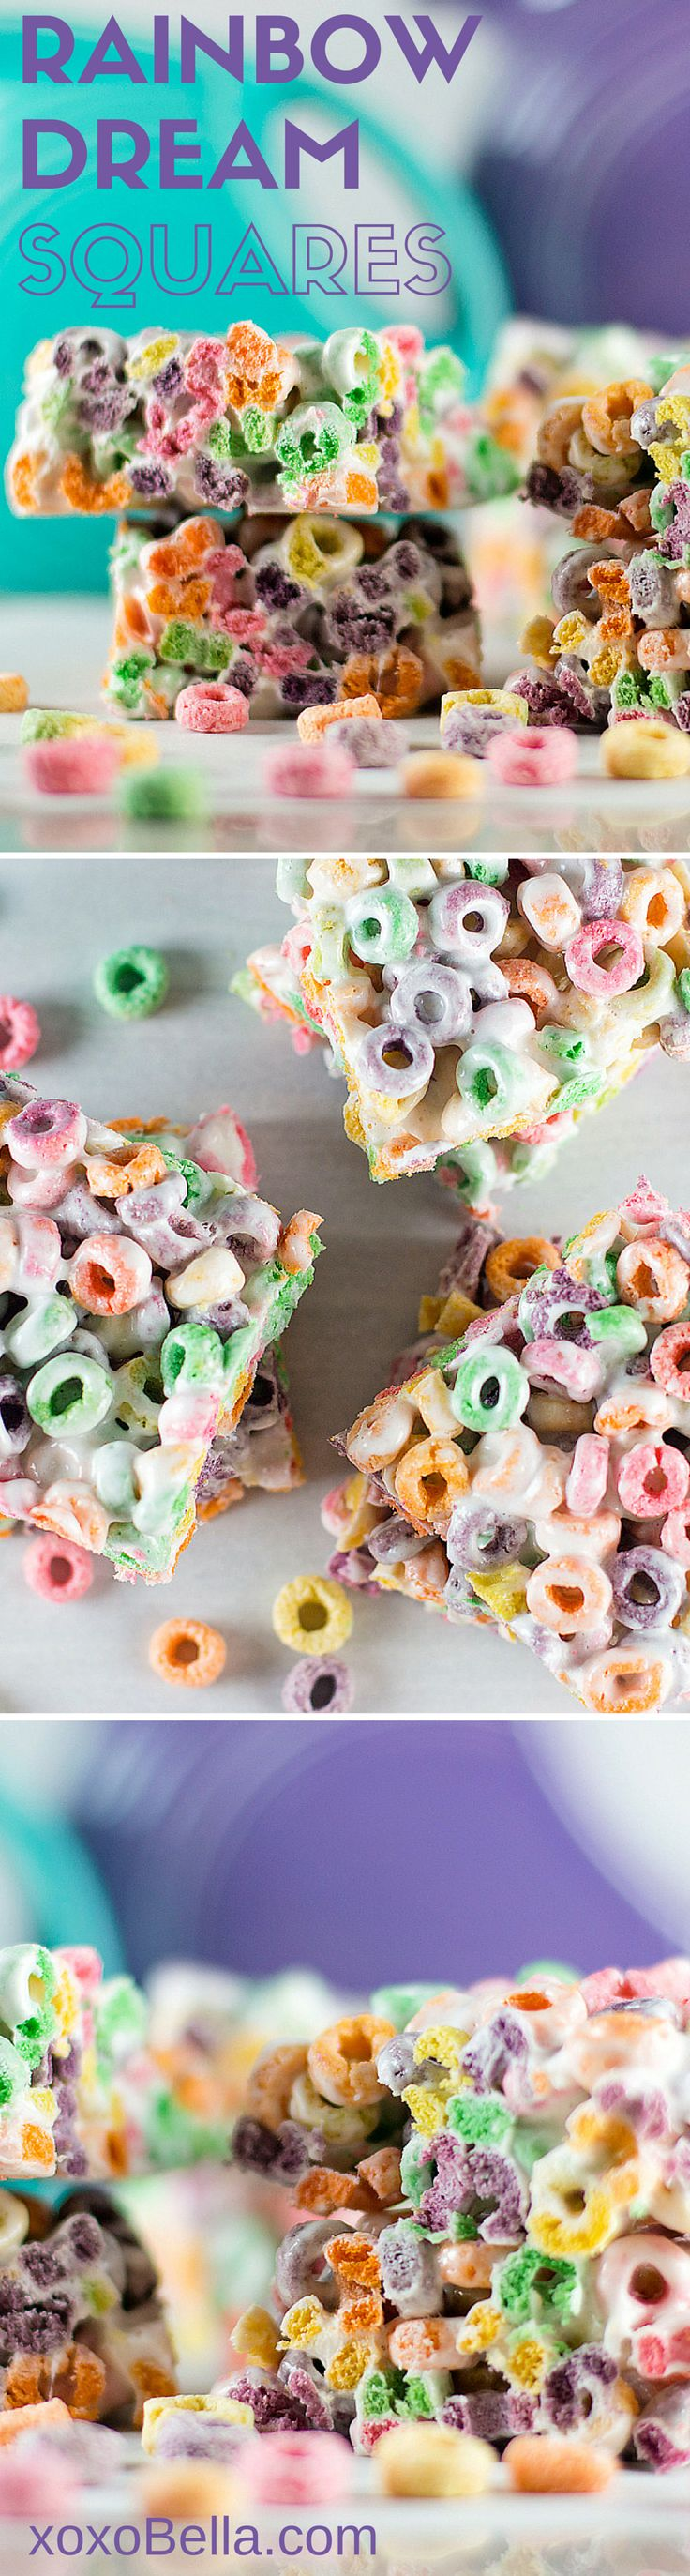 Rainbow Dream Squares made with Fruit Loops! xoxoBella.com  Fruit loops, marshmallow, rice crispy square, sweets, treats, recipe, easy recipe, sweet treat, taste the rainbow, unicorn treat